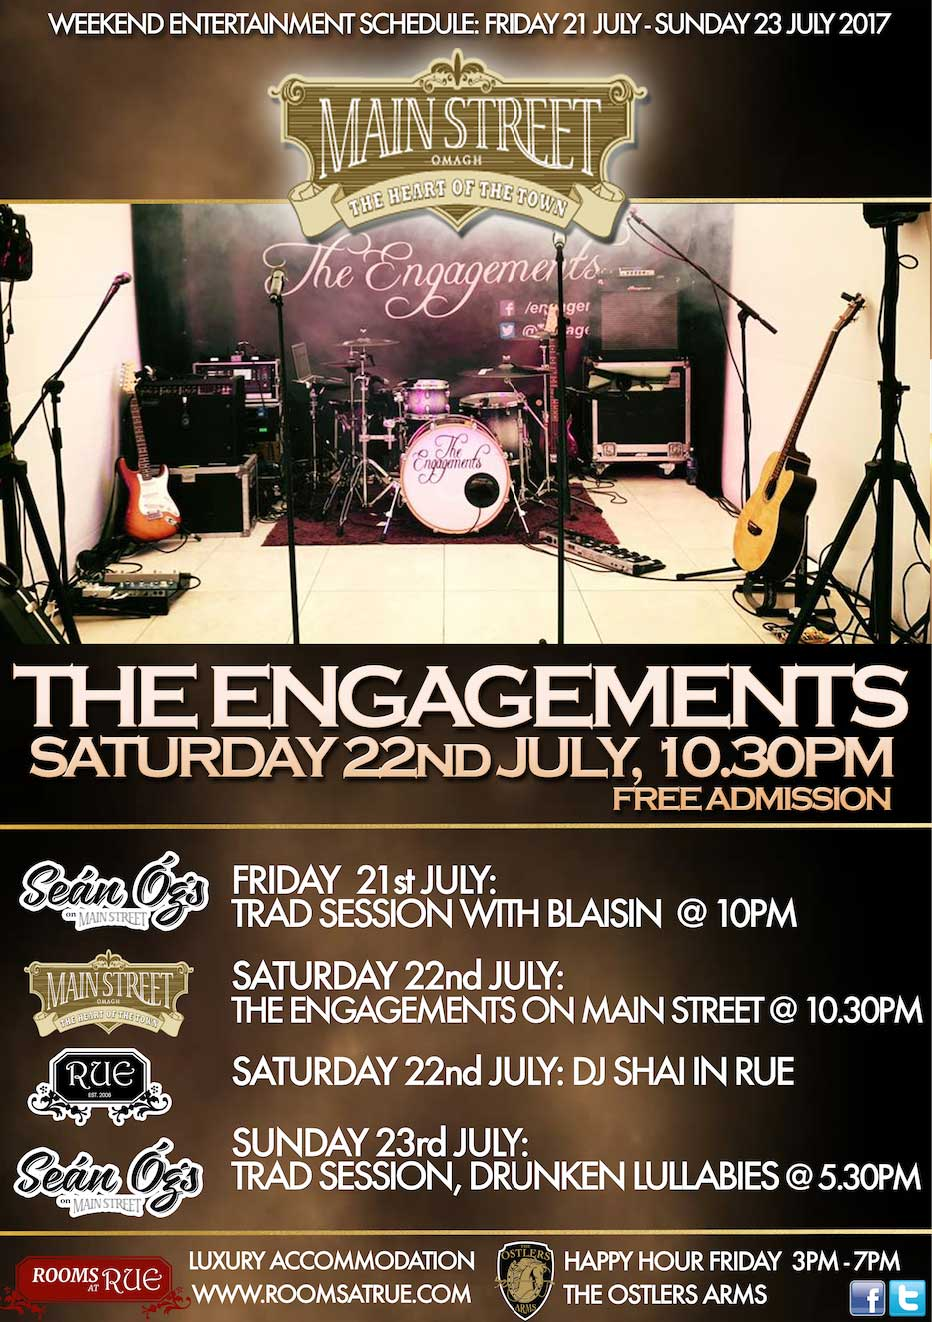 The Engagements Main Street Omagh web